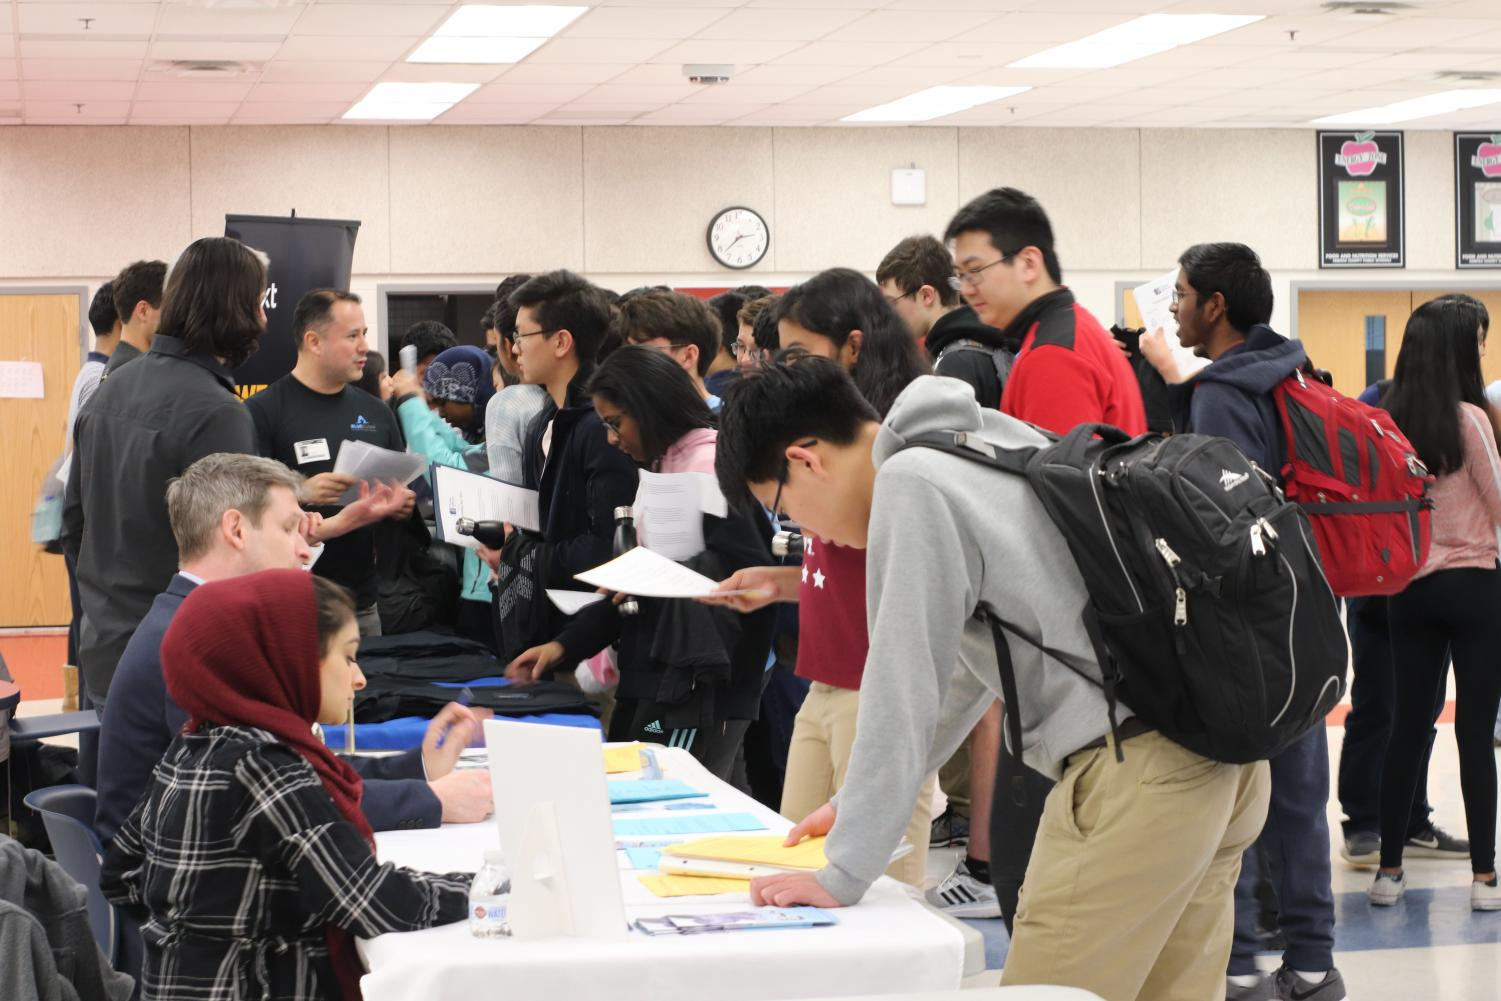 Junior Adam Yao discusses possible summer opportunities with representatives from various companies, such as Yext, during the Internship Fair. The fair is designed to aid students in finding summer opportunities to expand their knowledge and explore their career.